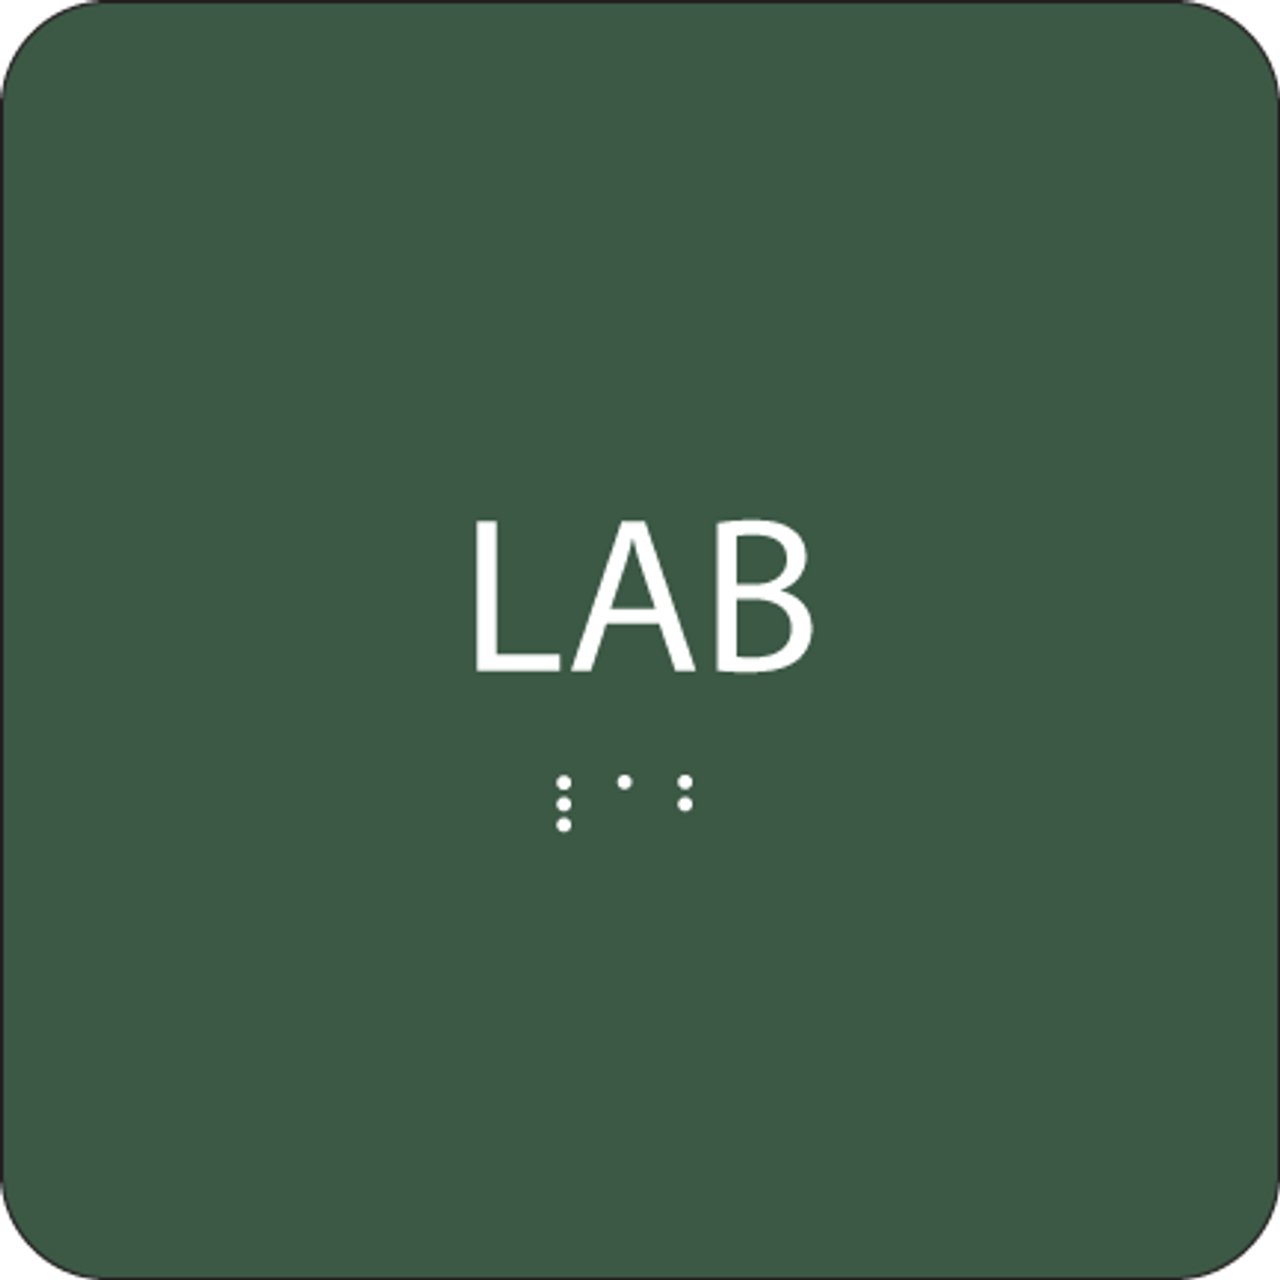 Green Lab Tactile Sign